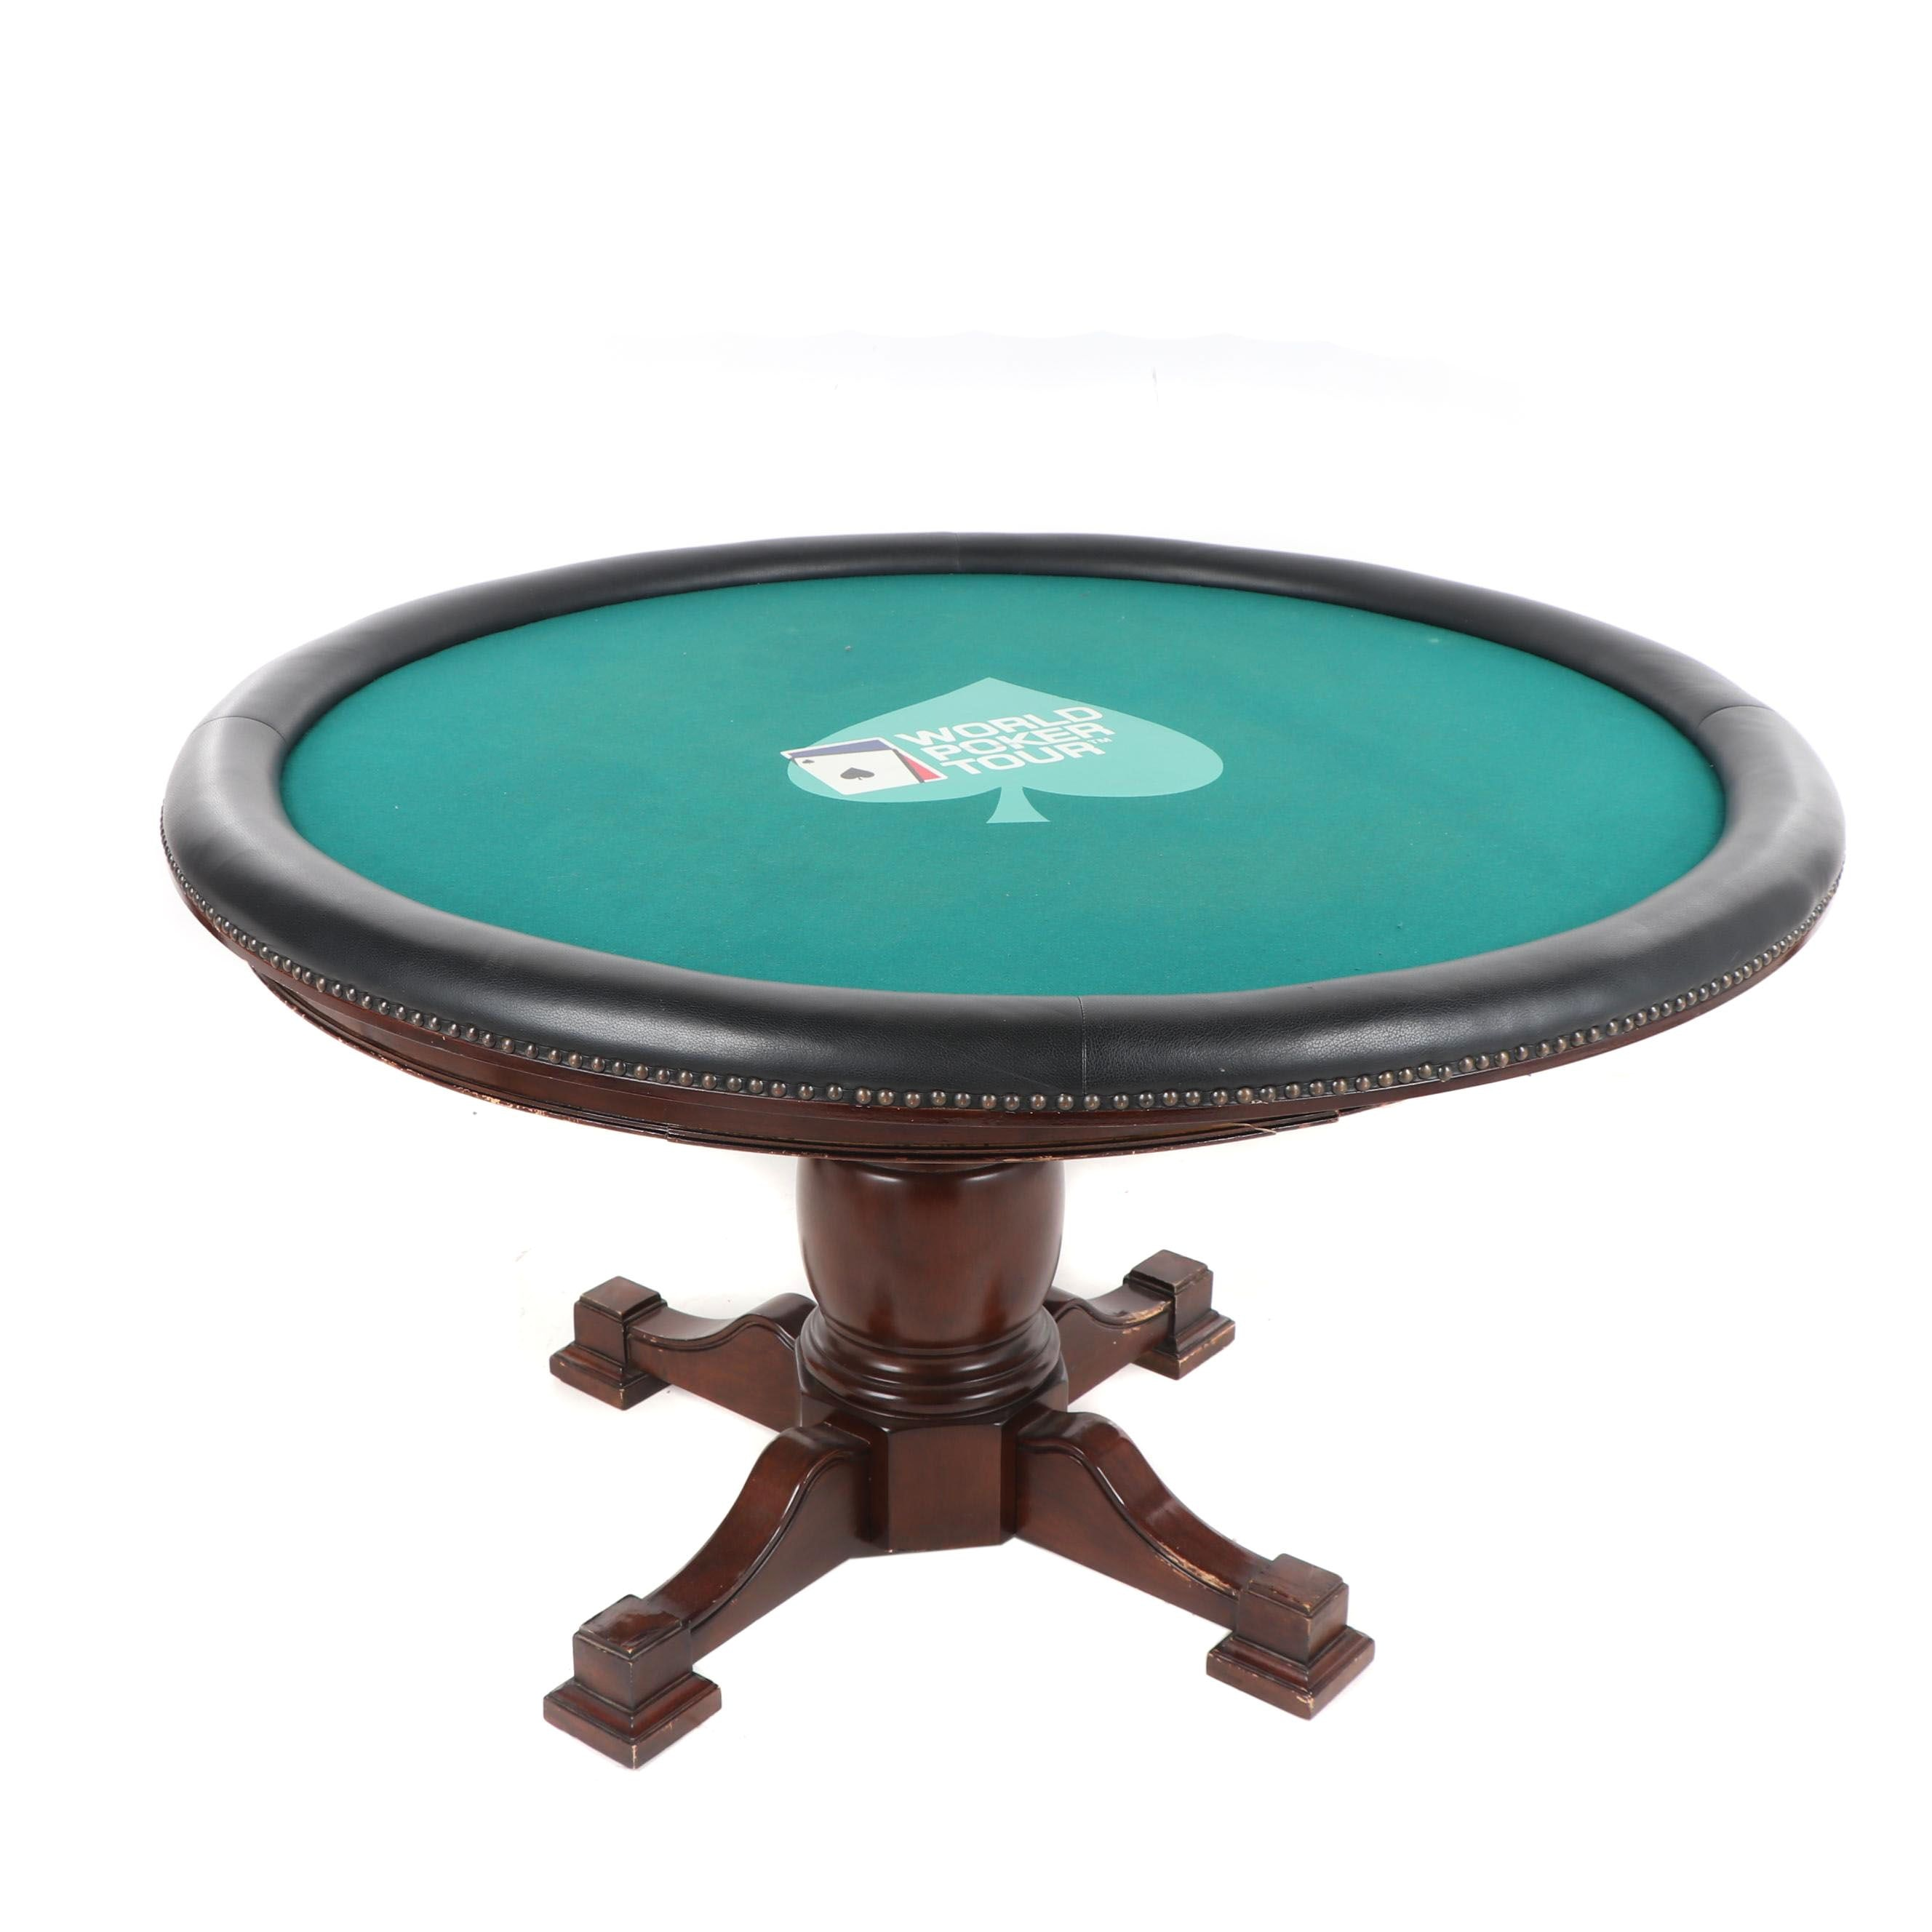 "Mahogany Circular Game Table with ""World Poker Tour"" Felt Top Panel, 21st C."